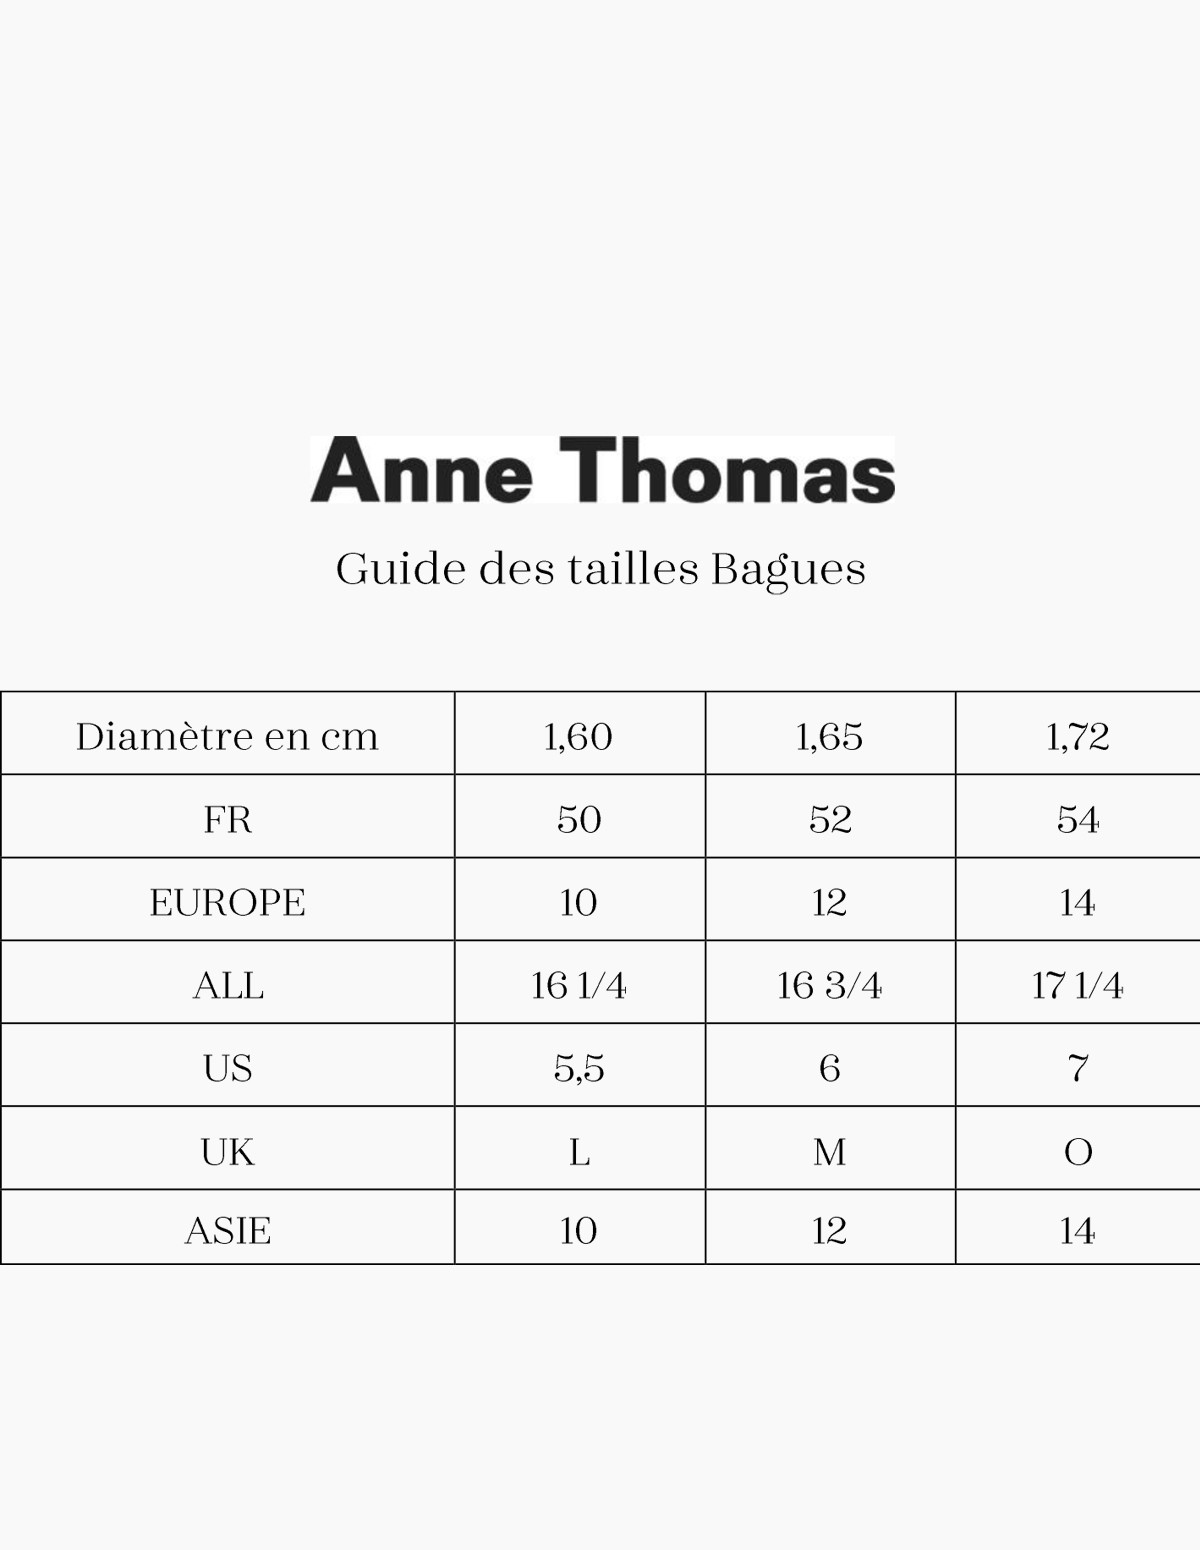 Anne Thomas Cassiopee Bague